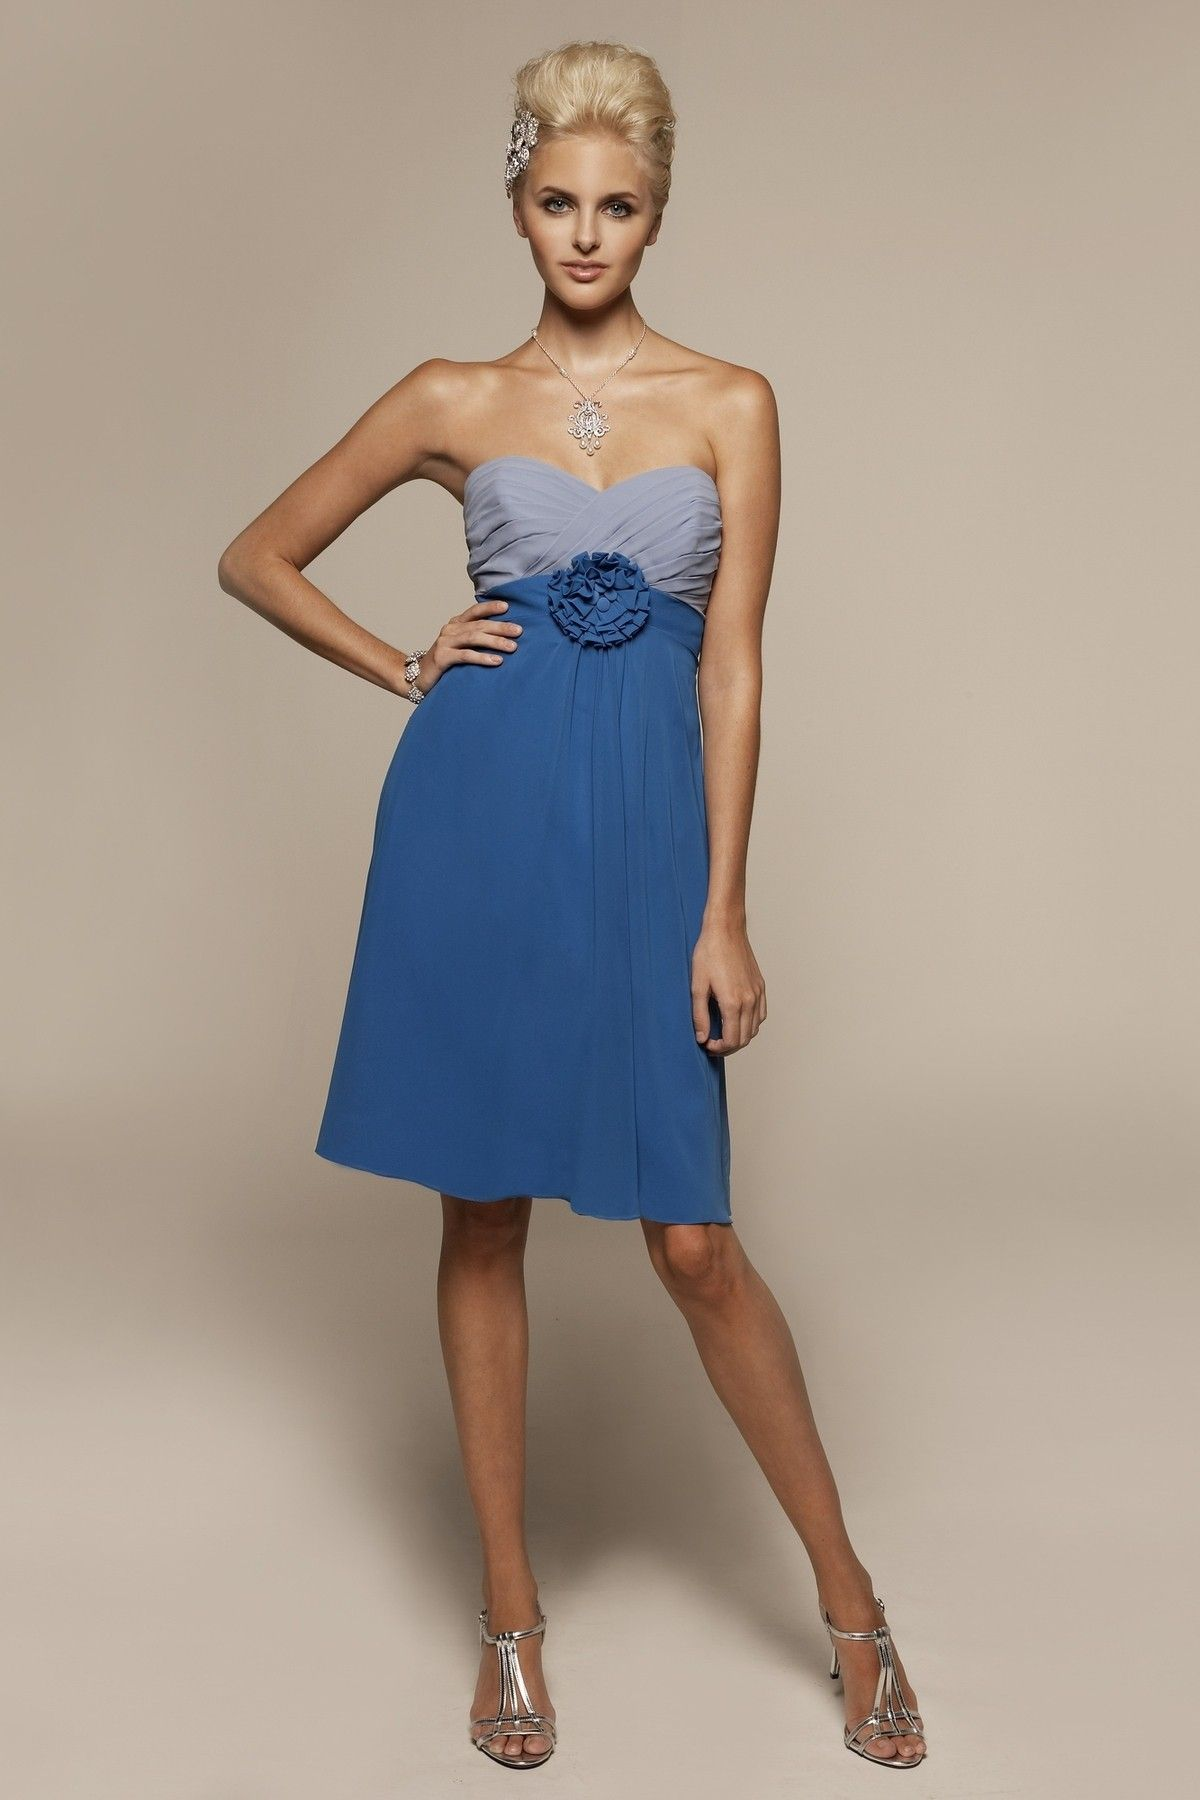 Kate schwend this one is blue and gray strapless chiffon dress with